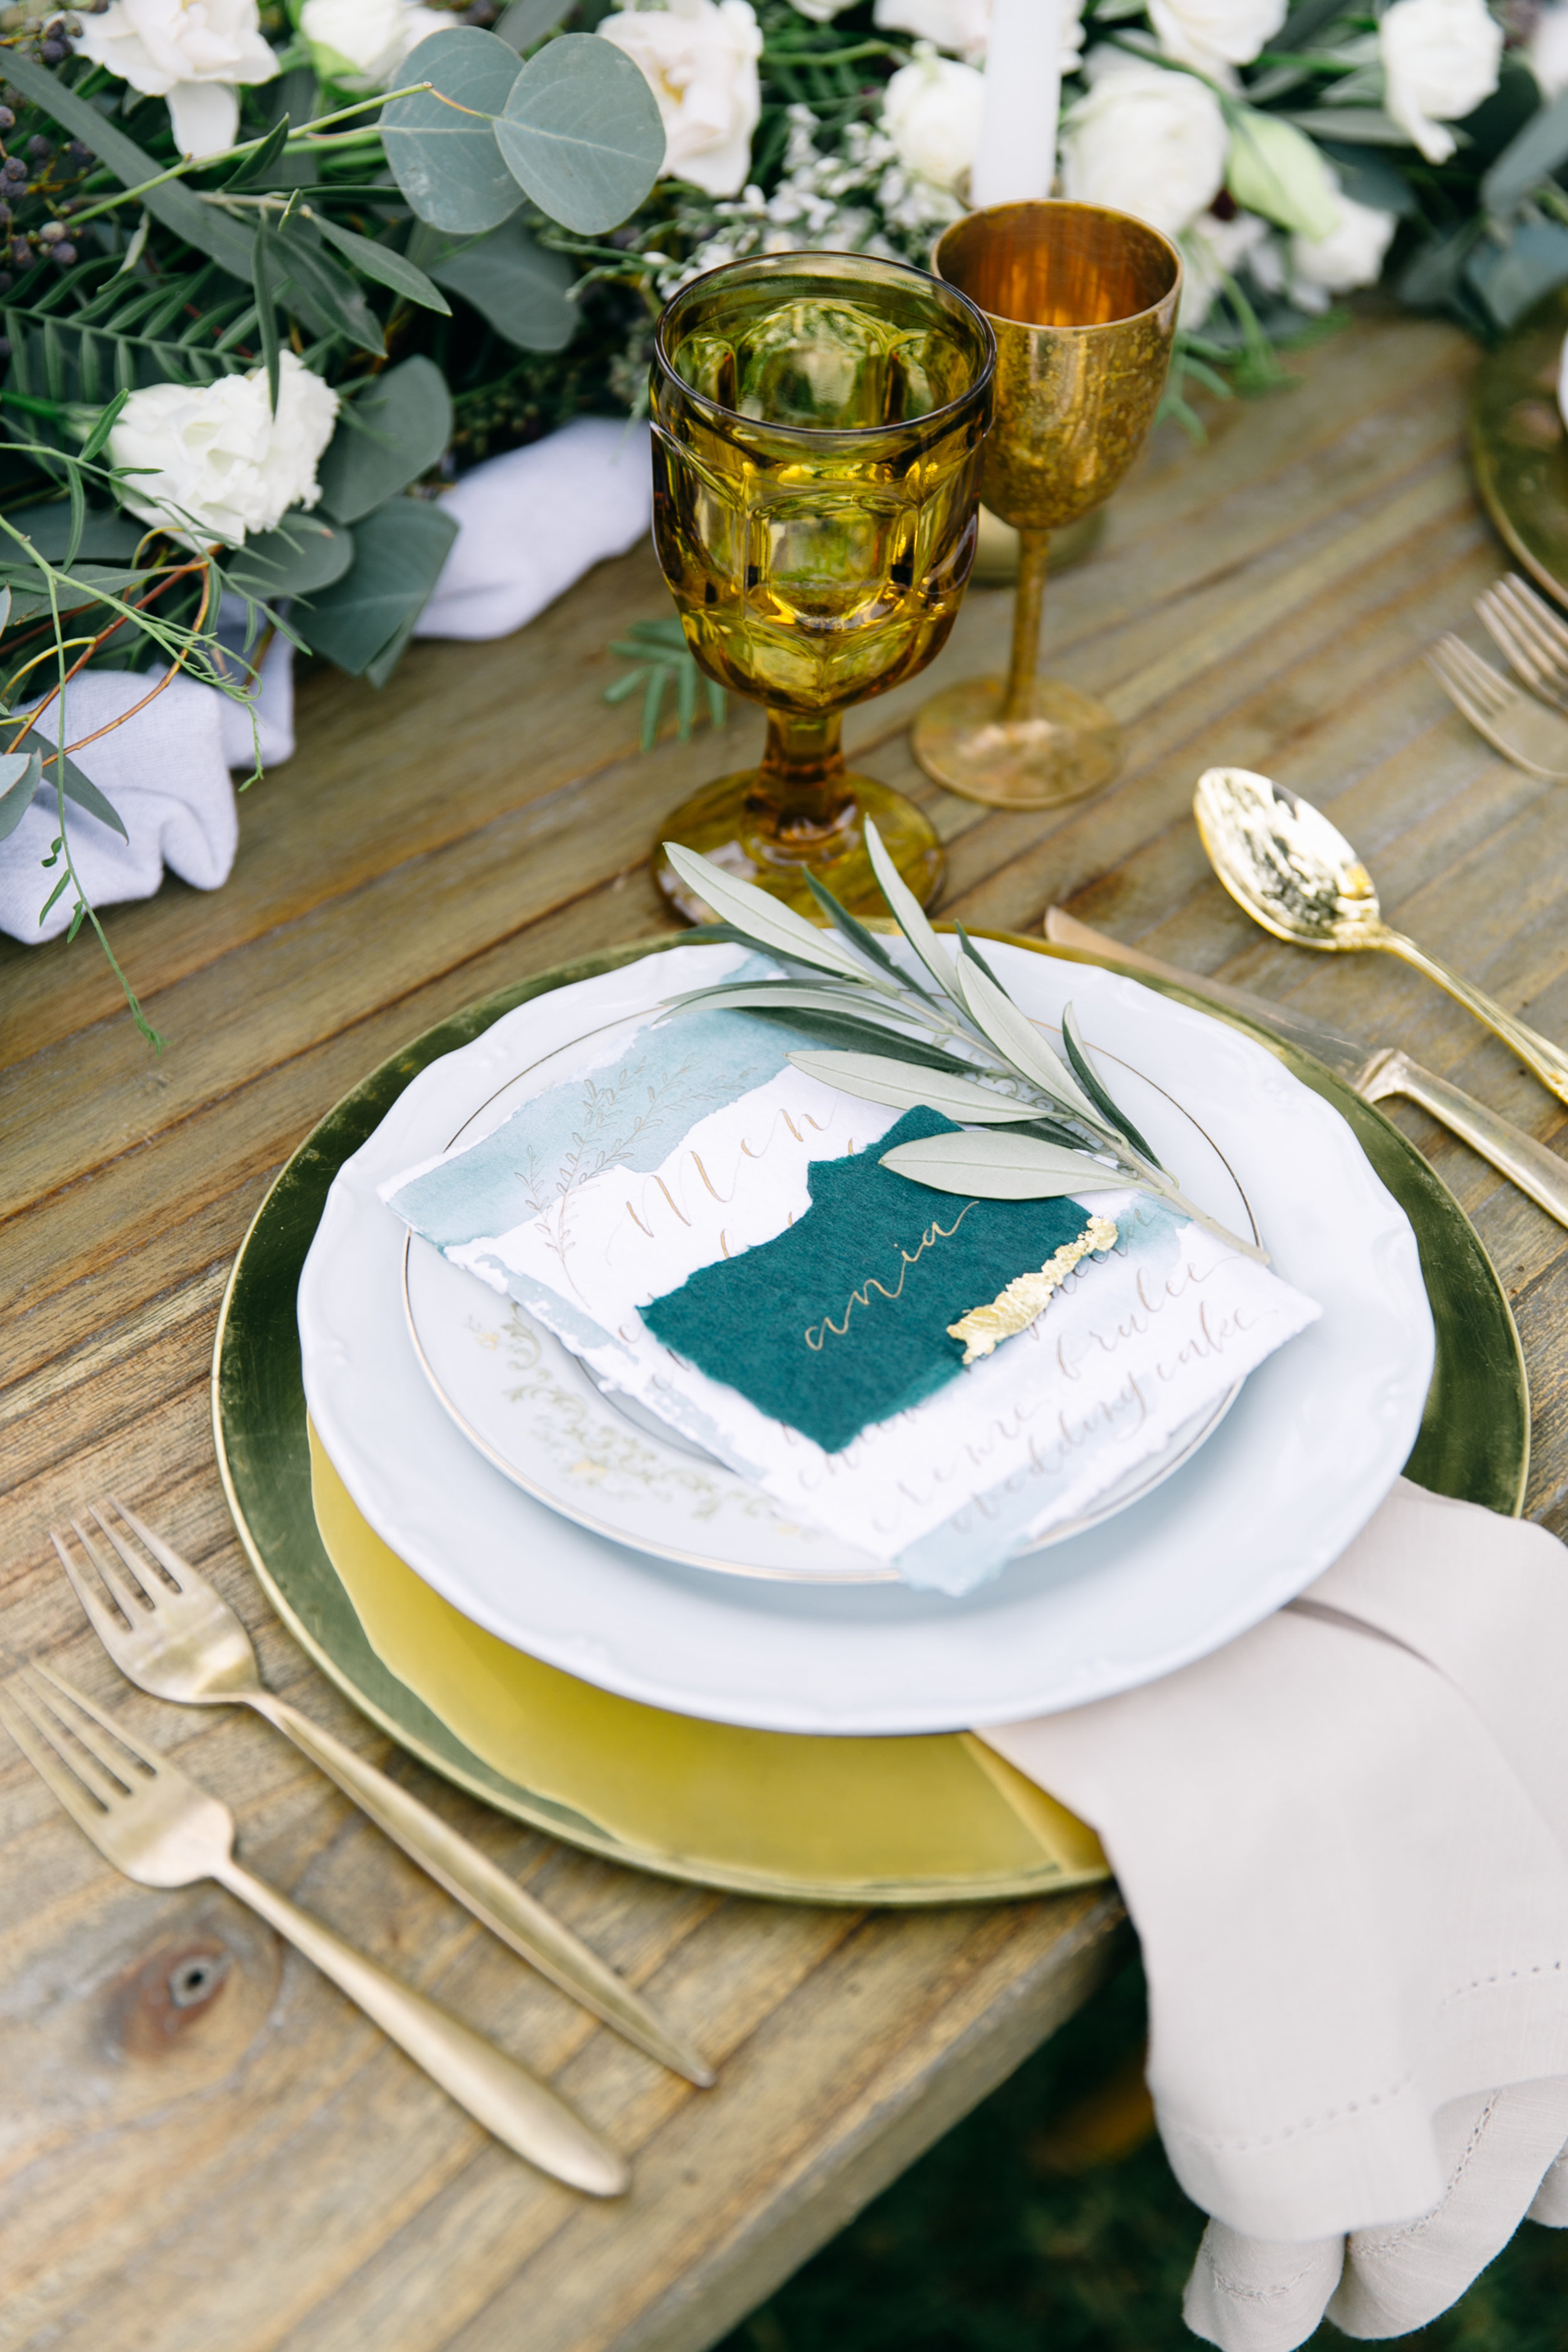 Romantic Wedding Place Cards on Handmade Paper with Gold Leaf